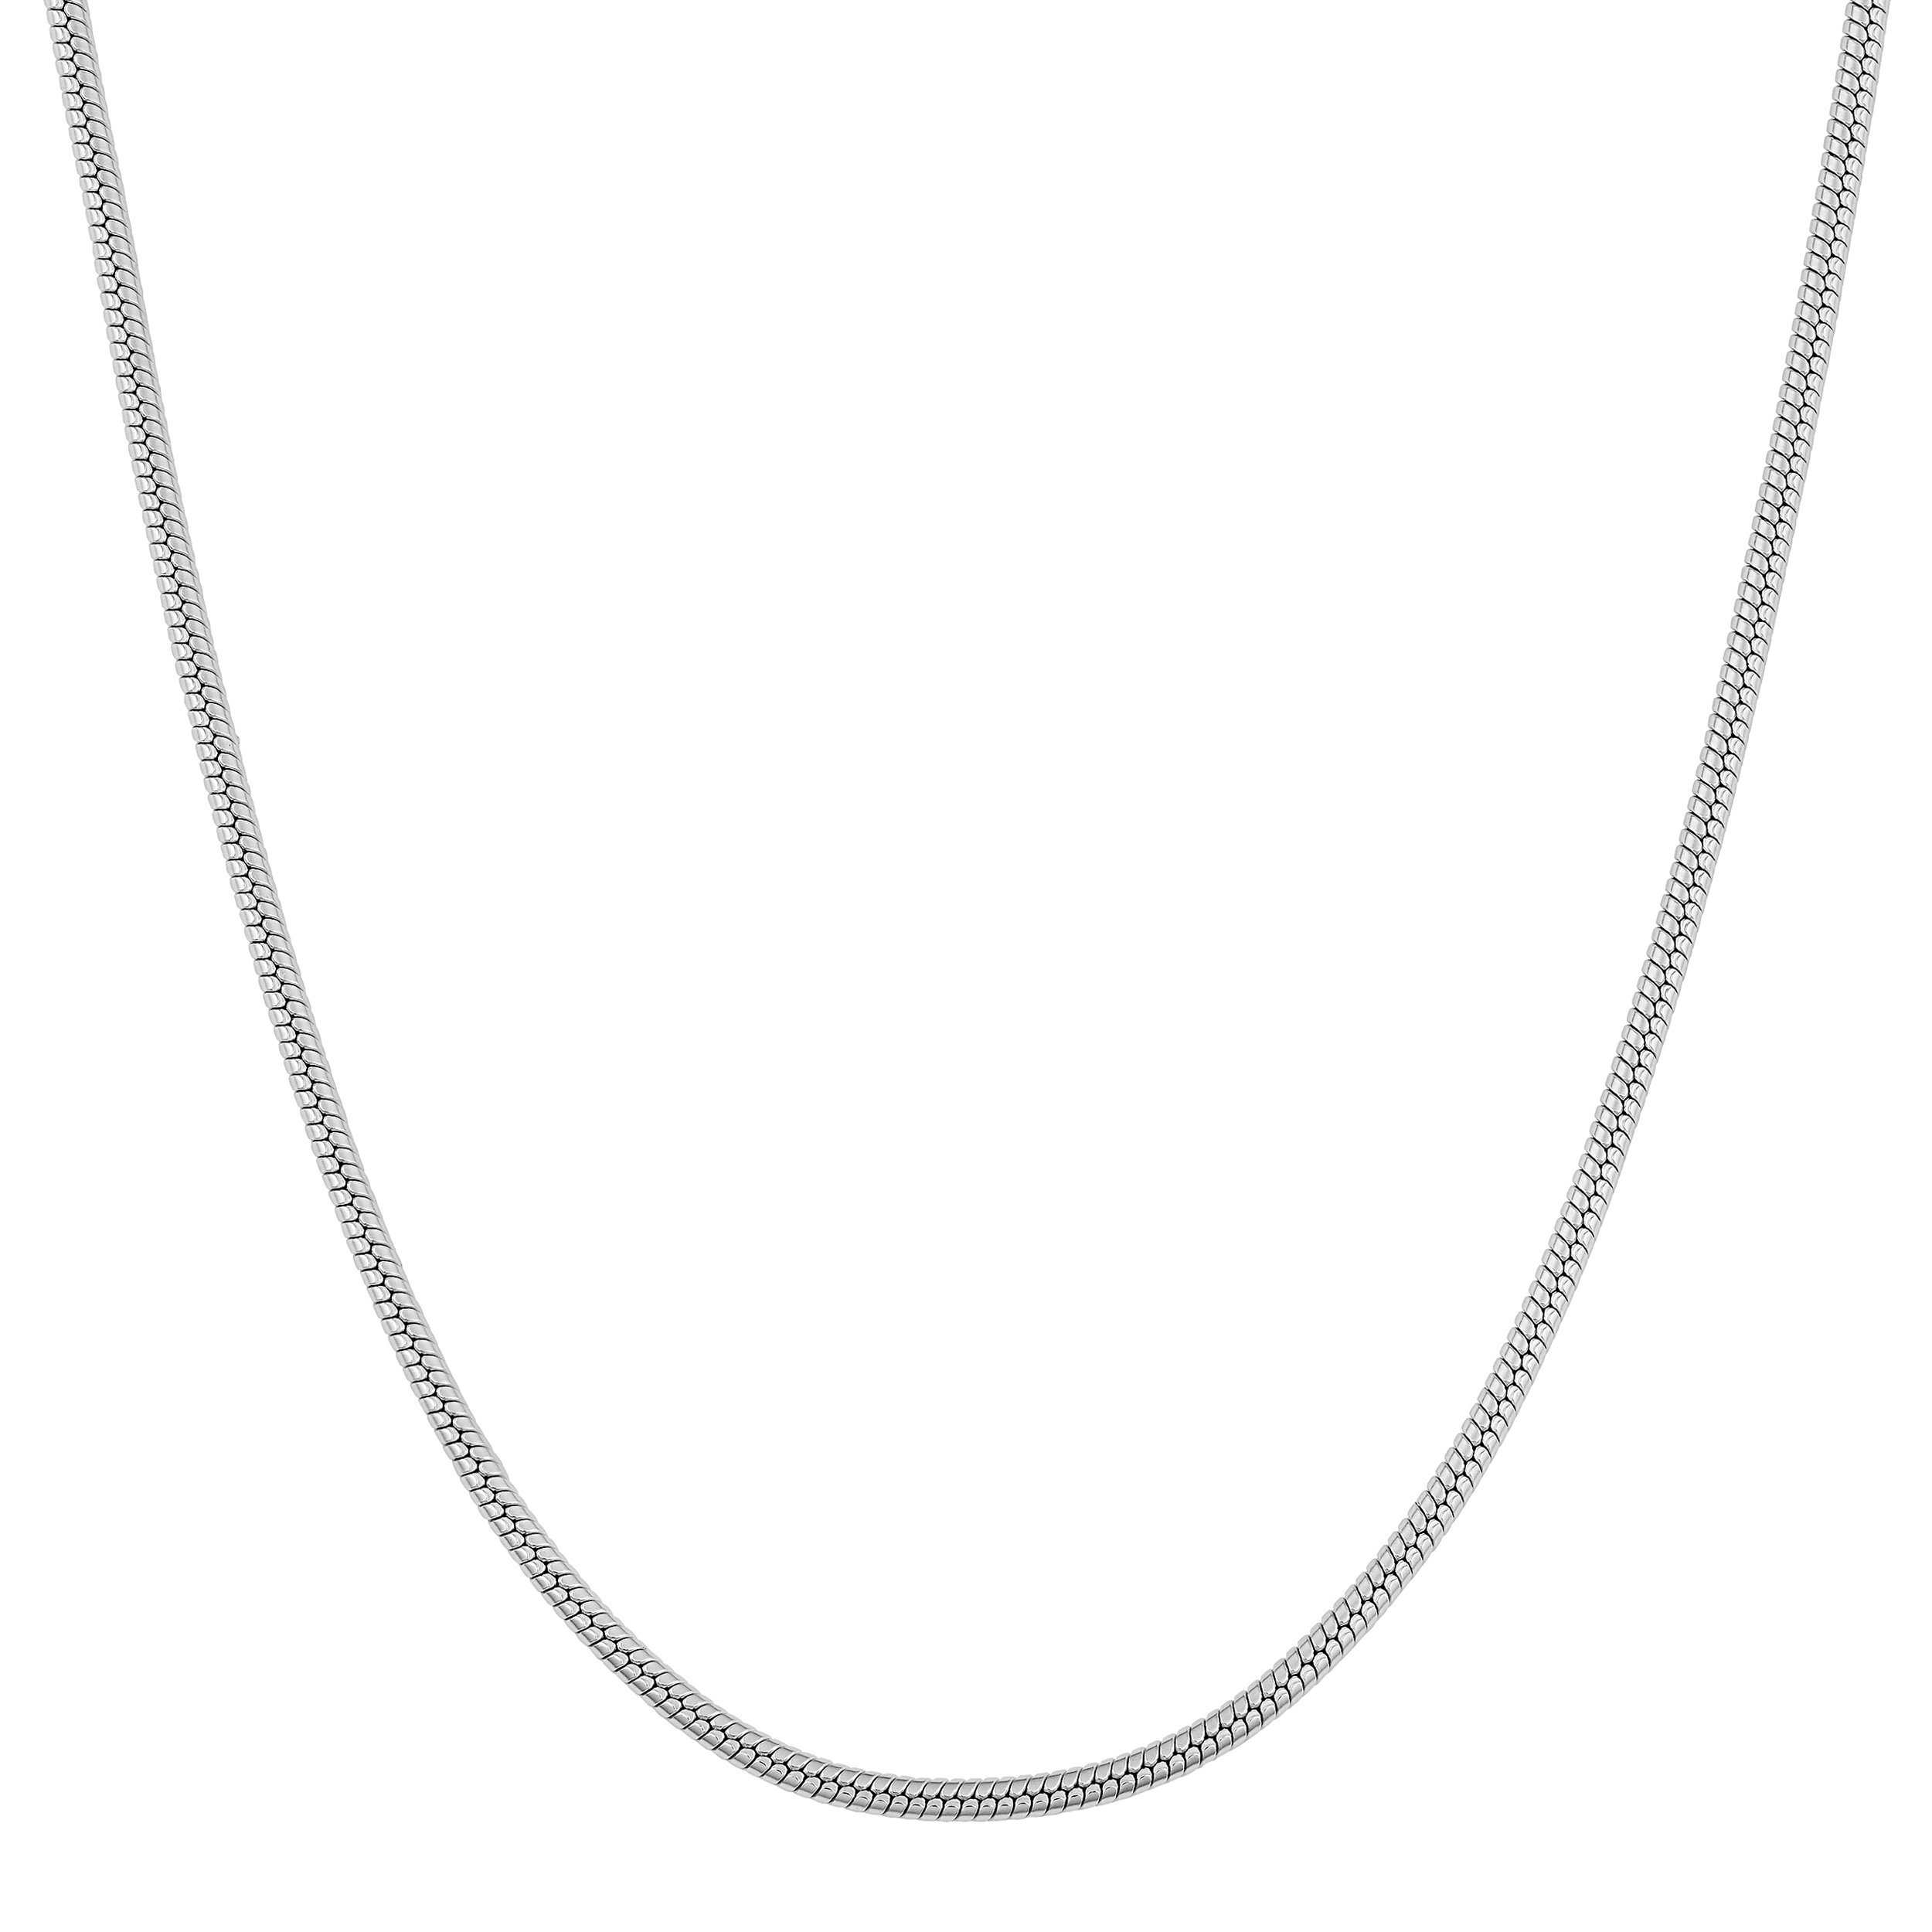 Kooljewelry Sterling Silver 1.3 mm Round Snake Chain Necklace